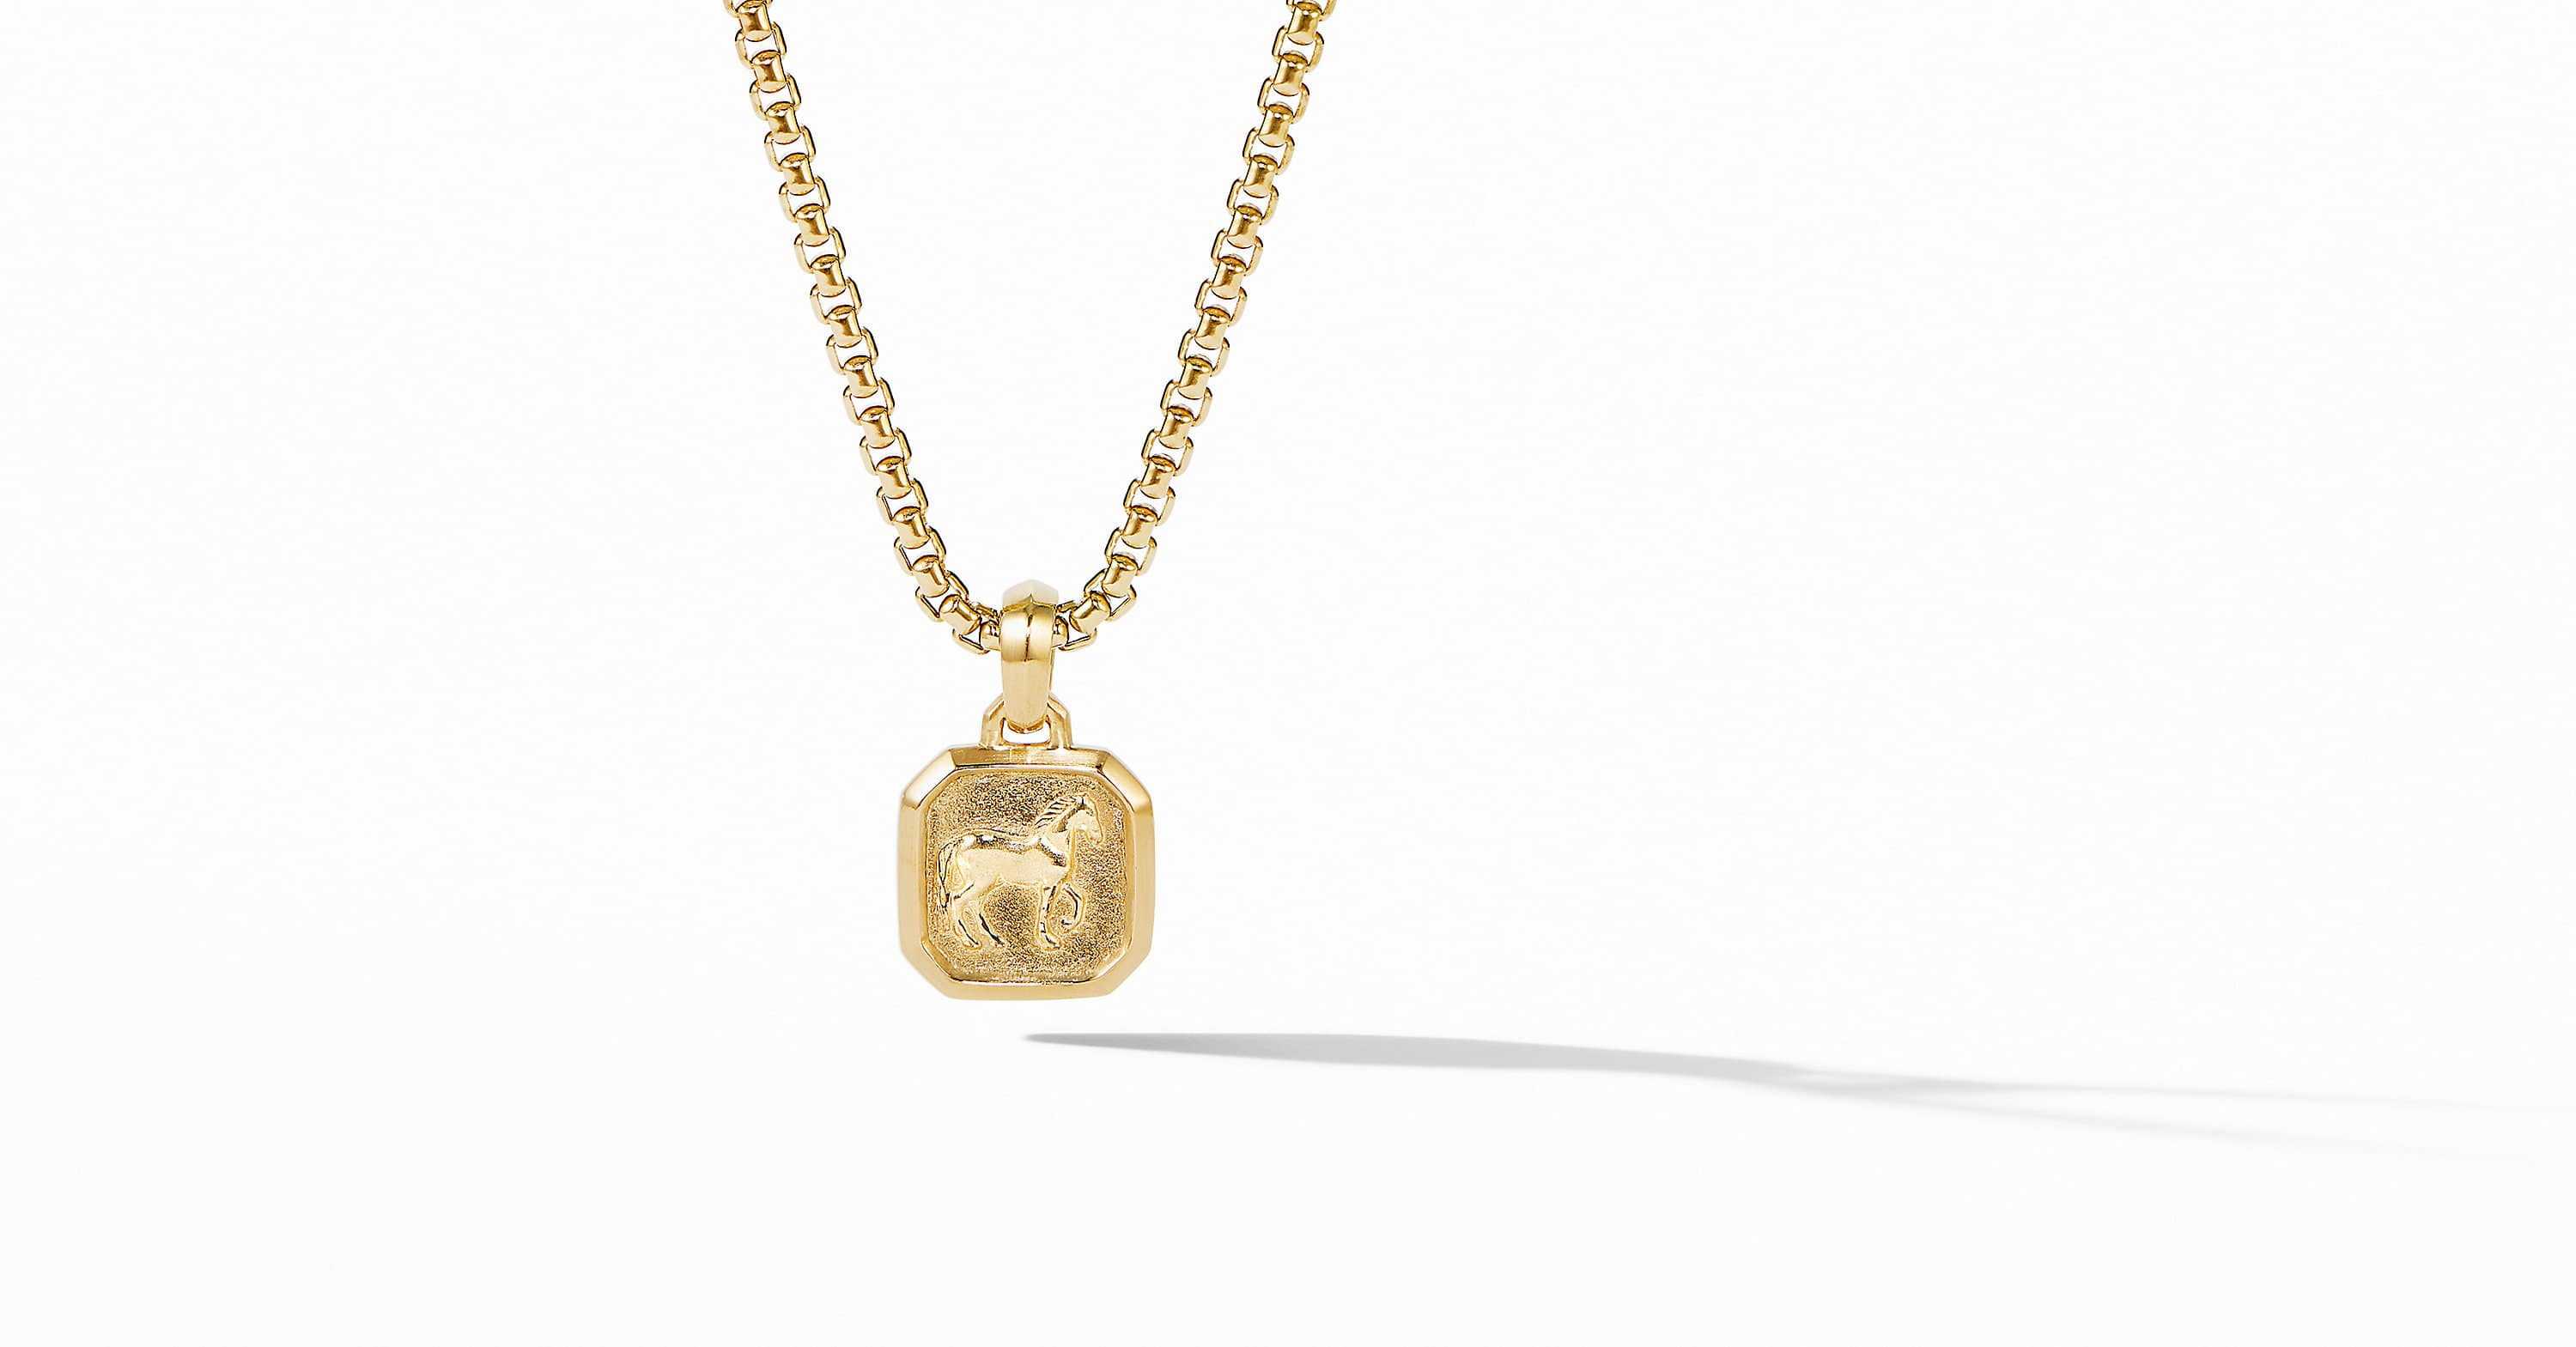 Petrvs Small Horse Pendant in 18K Yellow Gold